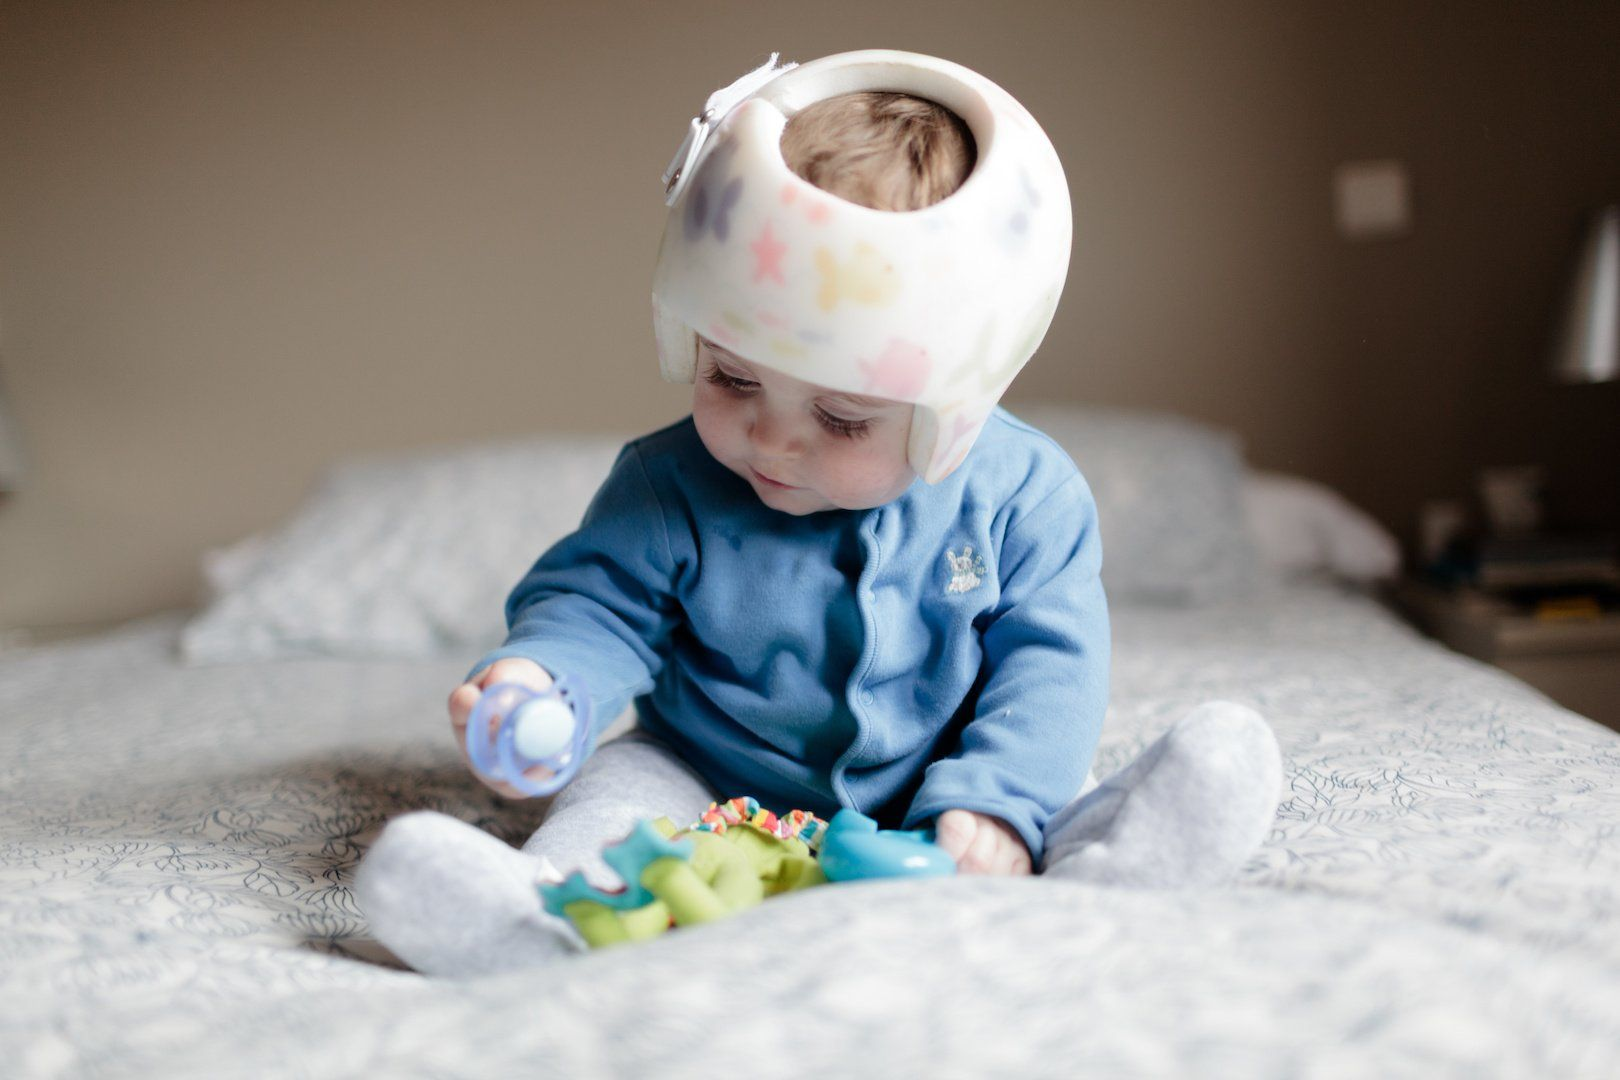 Developmental outcomes of positional plagiocephaly